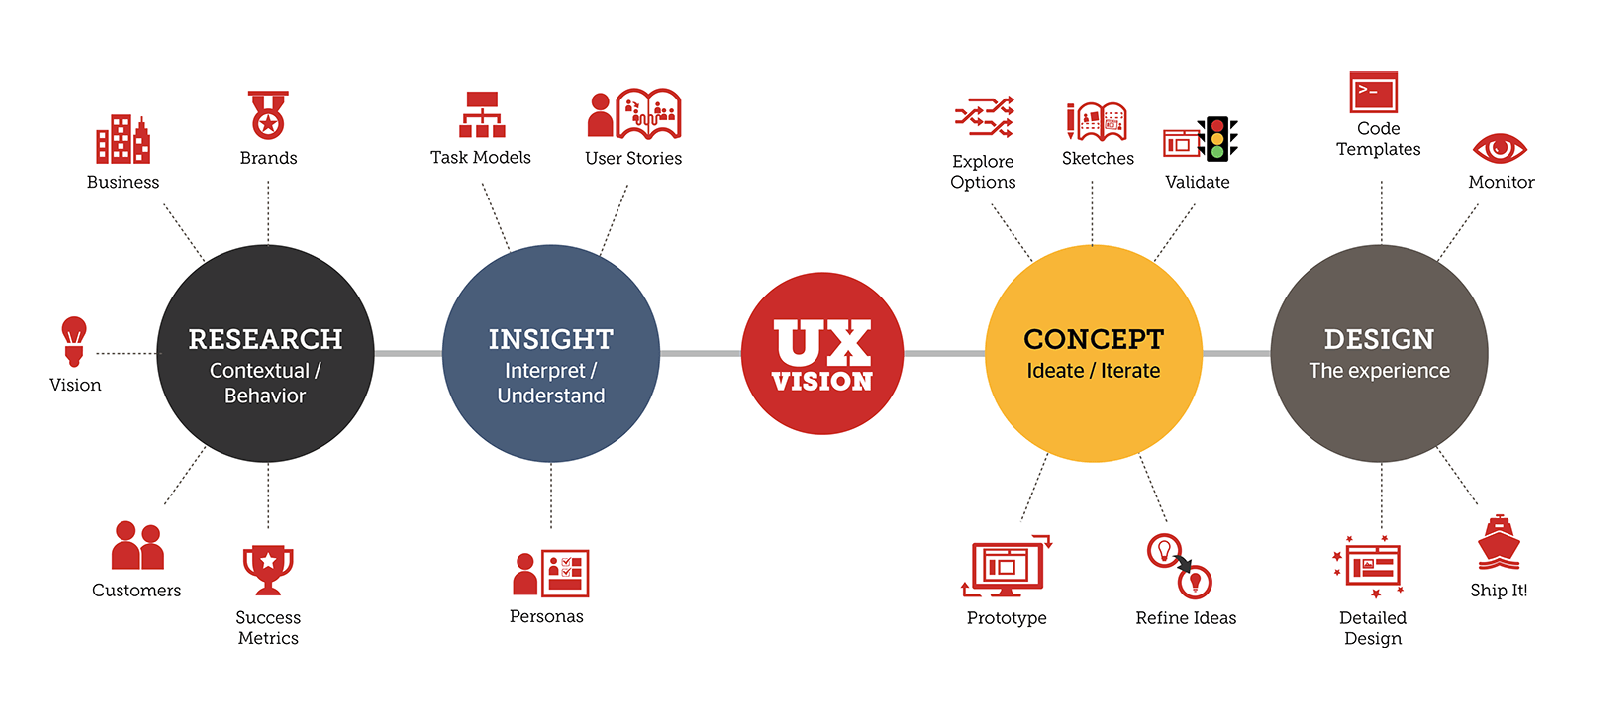 Emphasize Simple UX